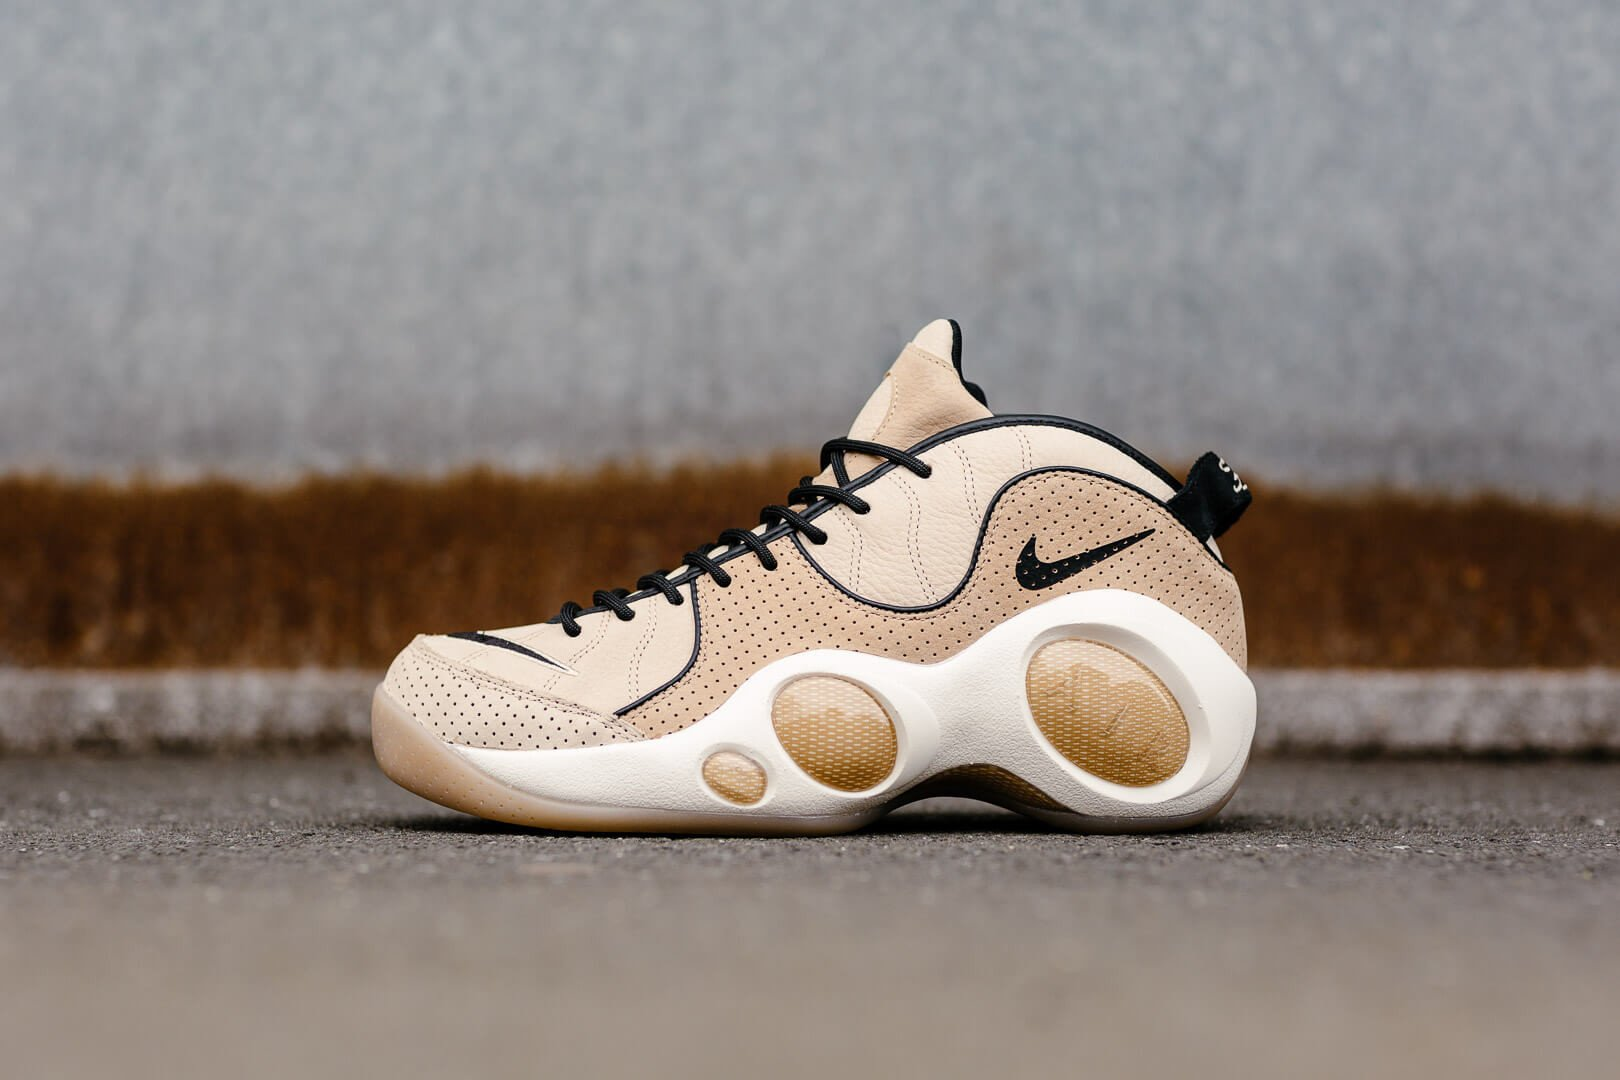 NikeLab Zoom Flight 95 941943-001